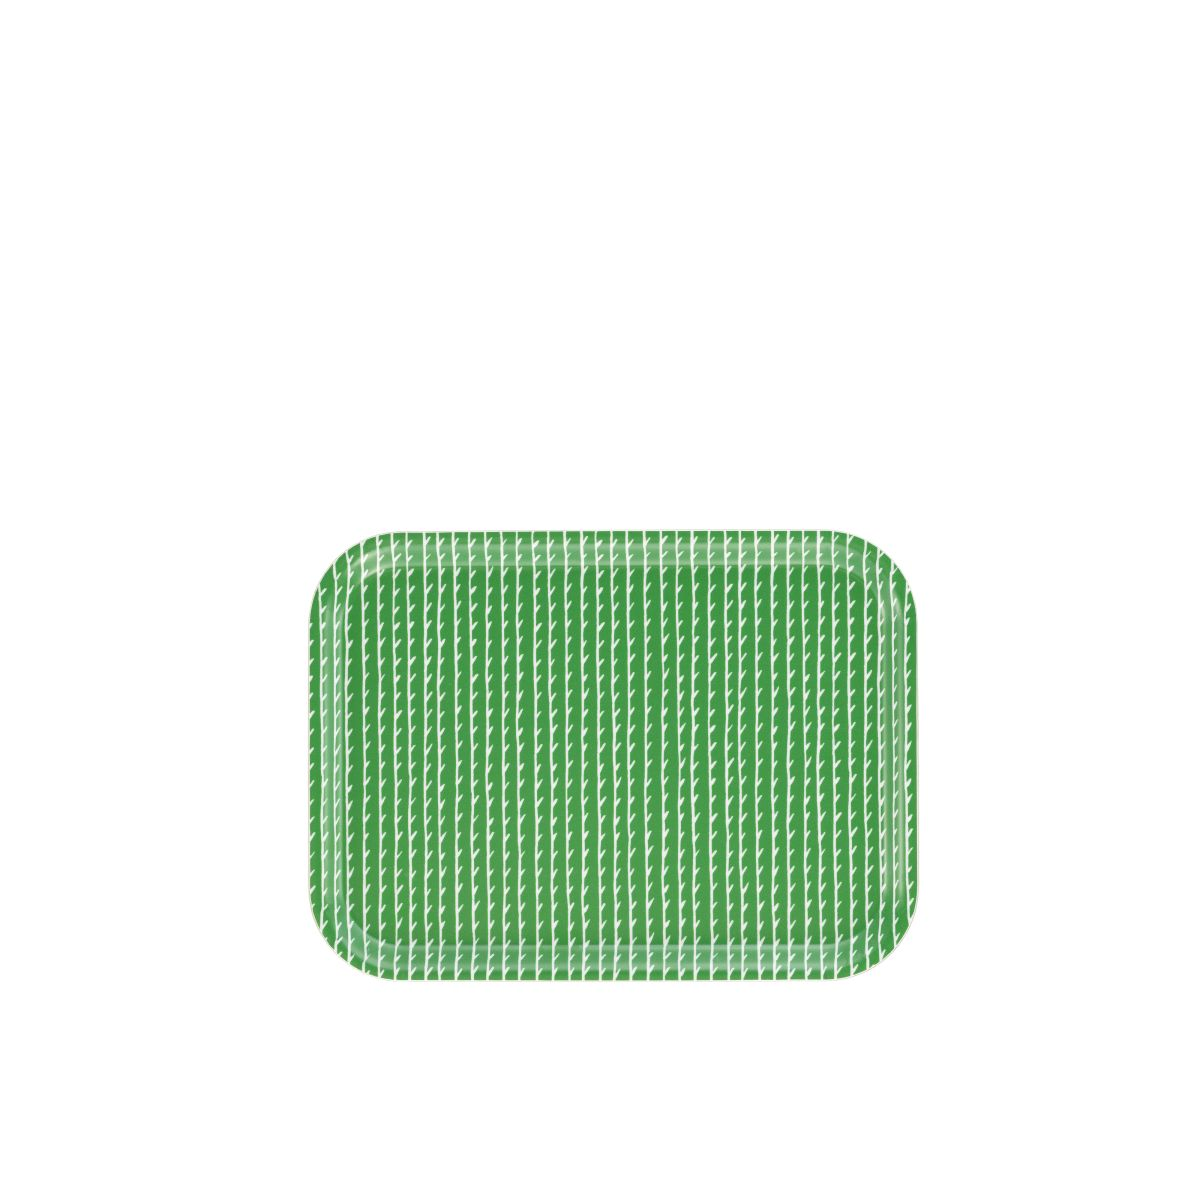 Rivi Tray green _ white small_F_web